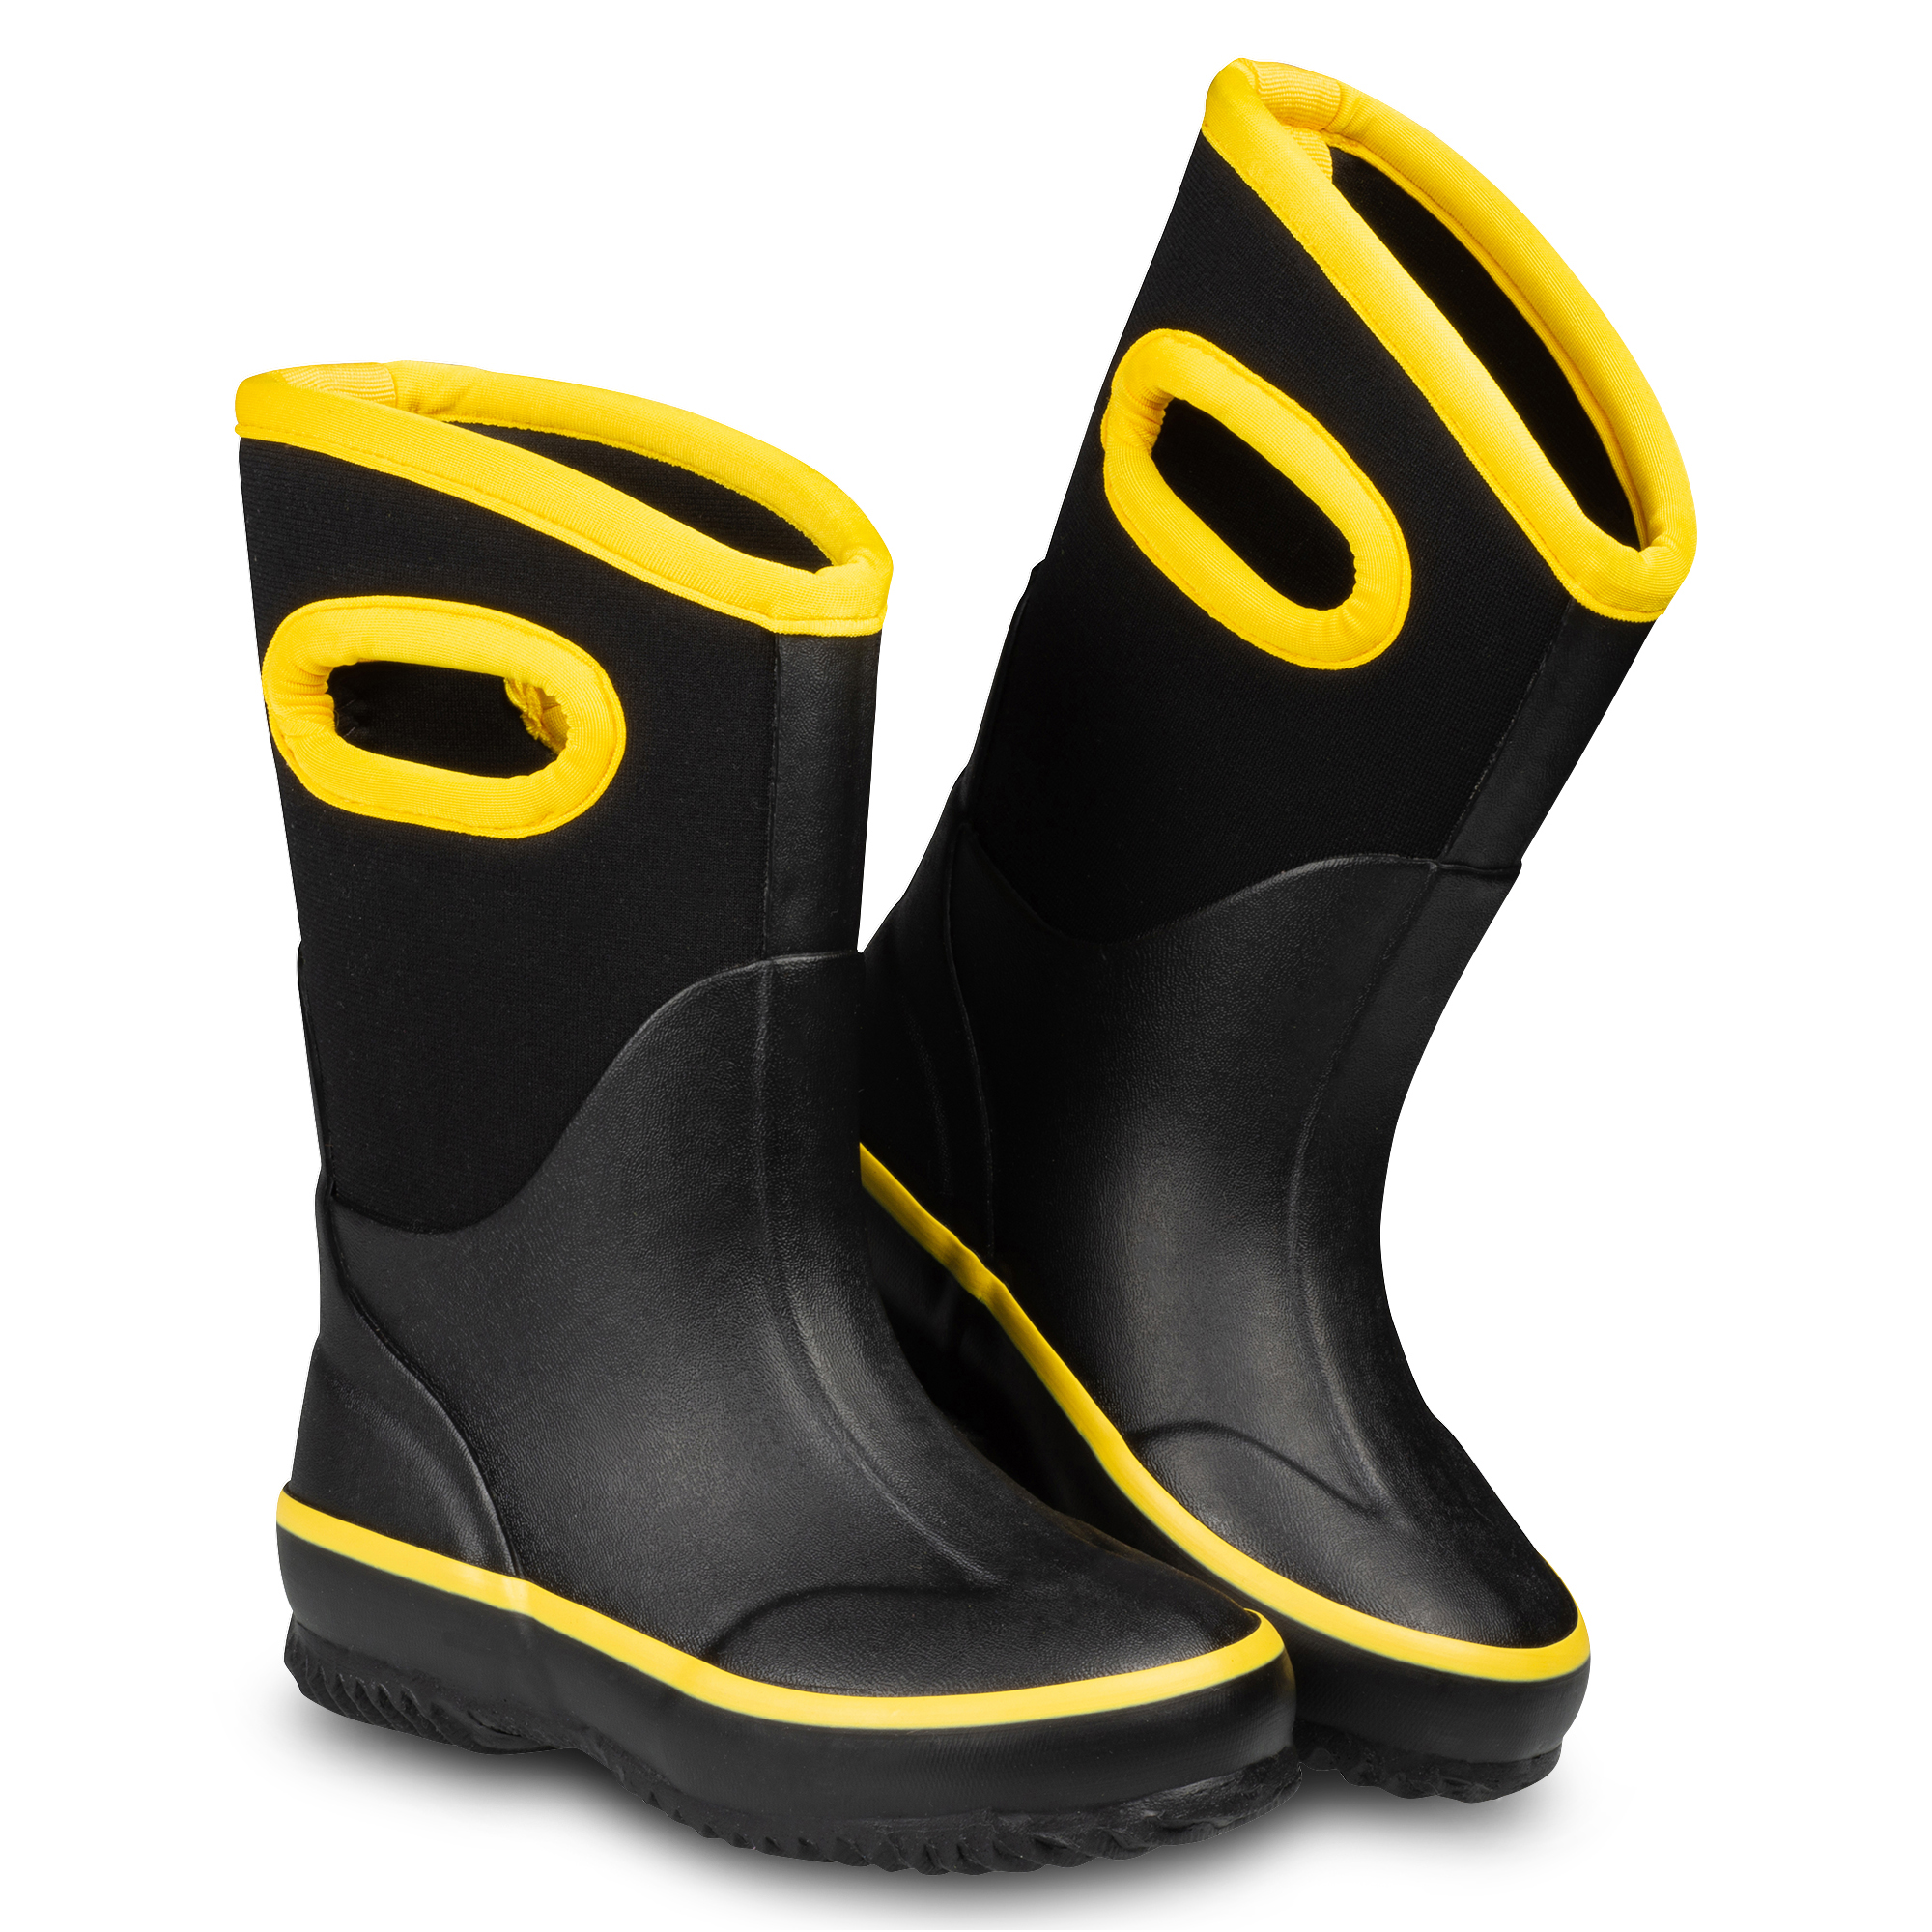 Boys ZOOGS Kids Waterproof Rain Boots for Girls and Toddlers Black